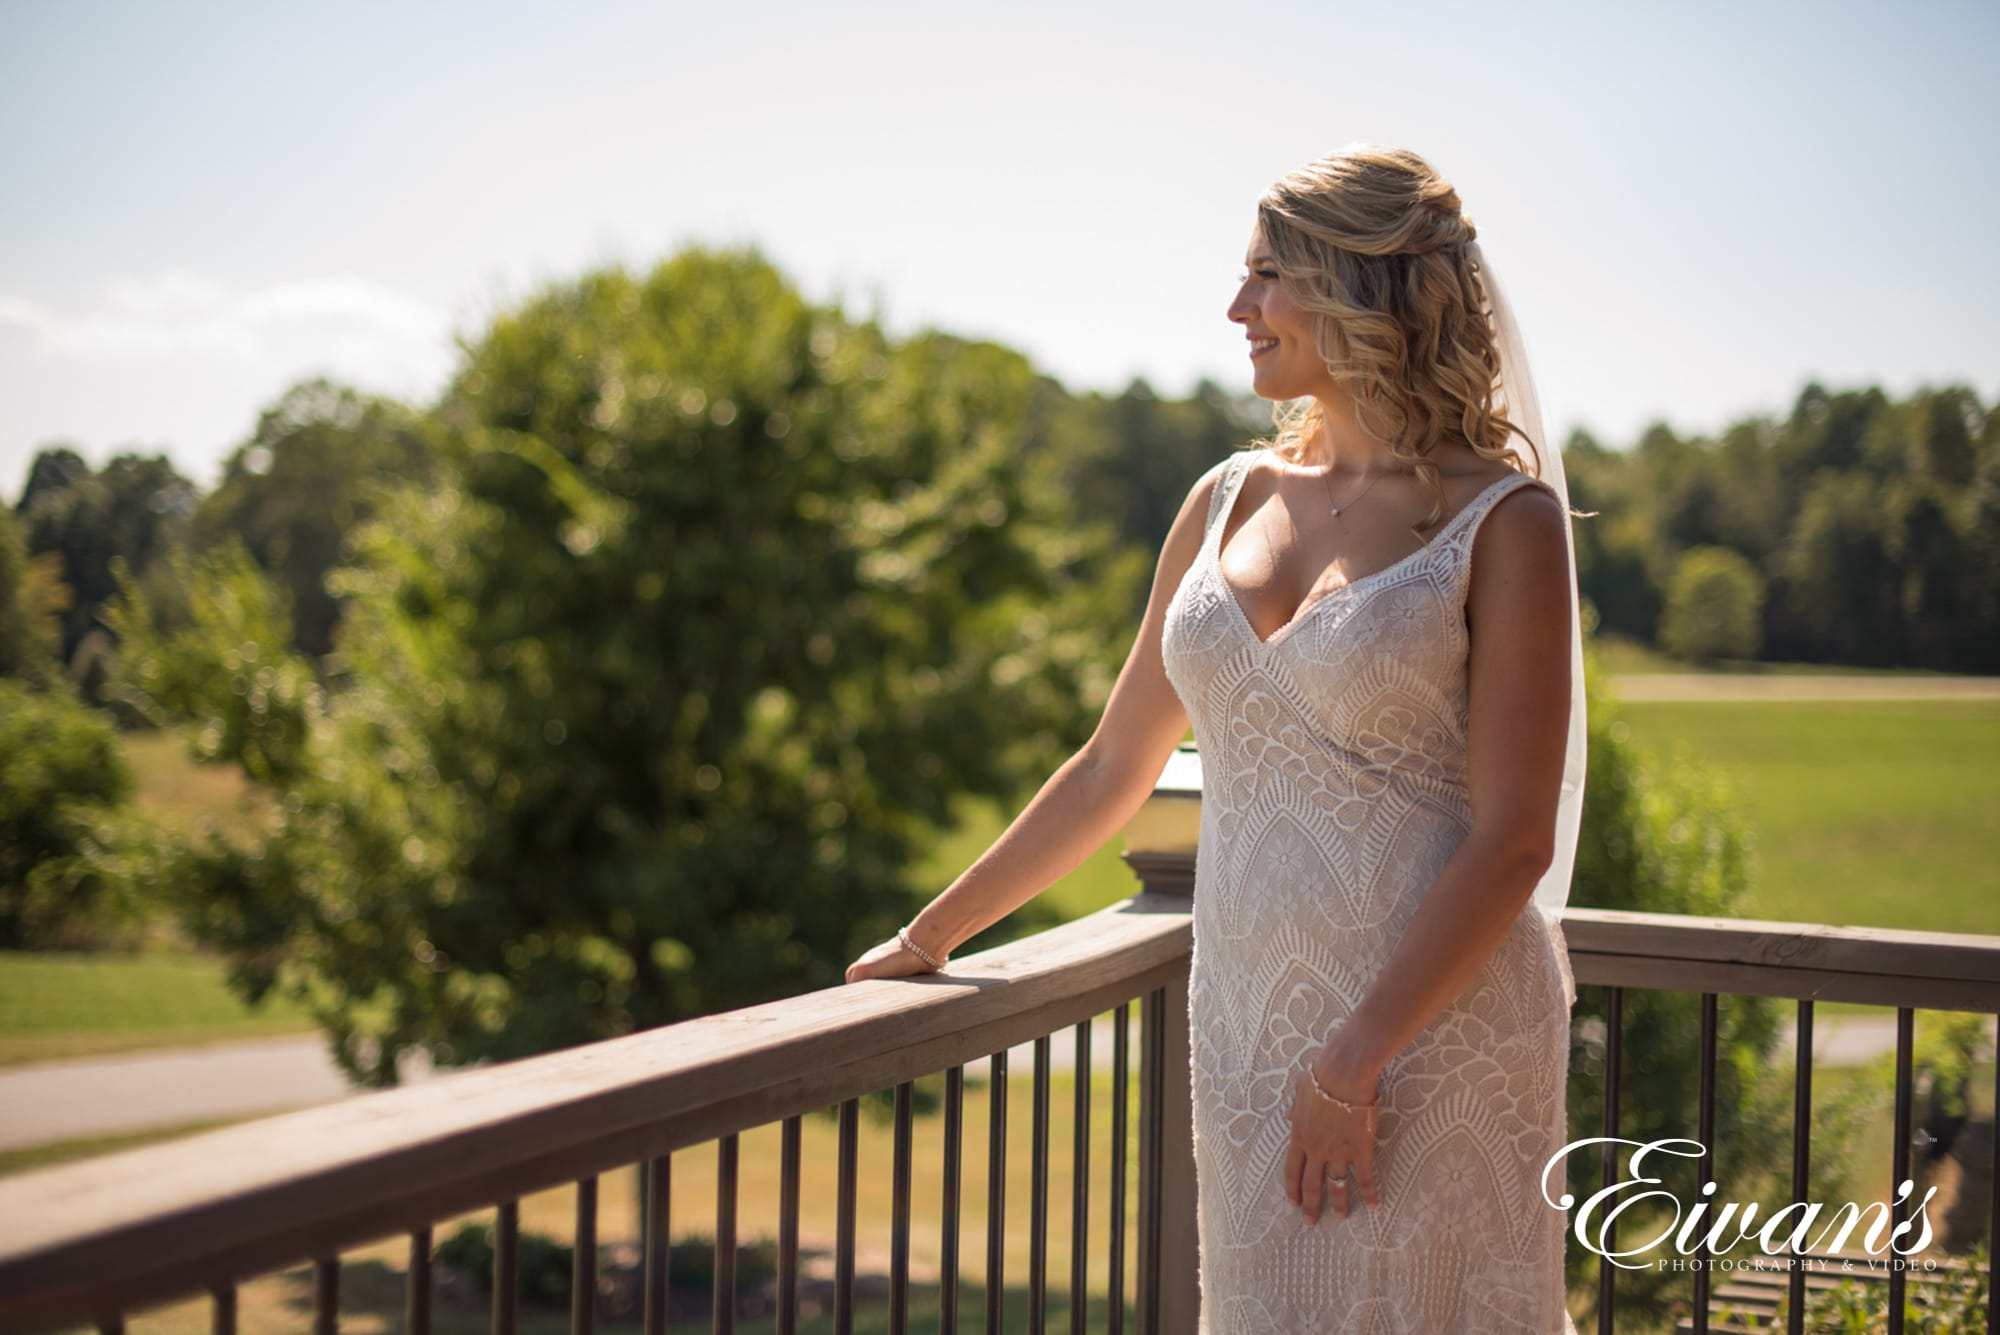 image of a bride looking off into the distance on a balcony